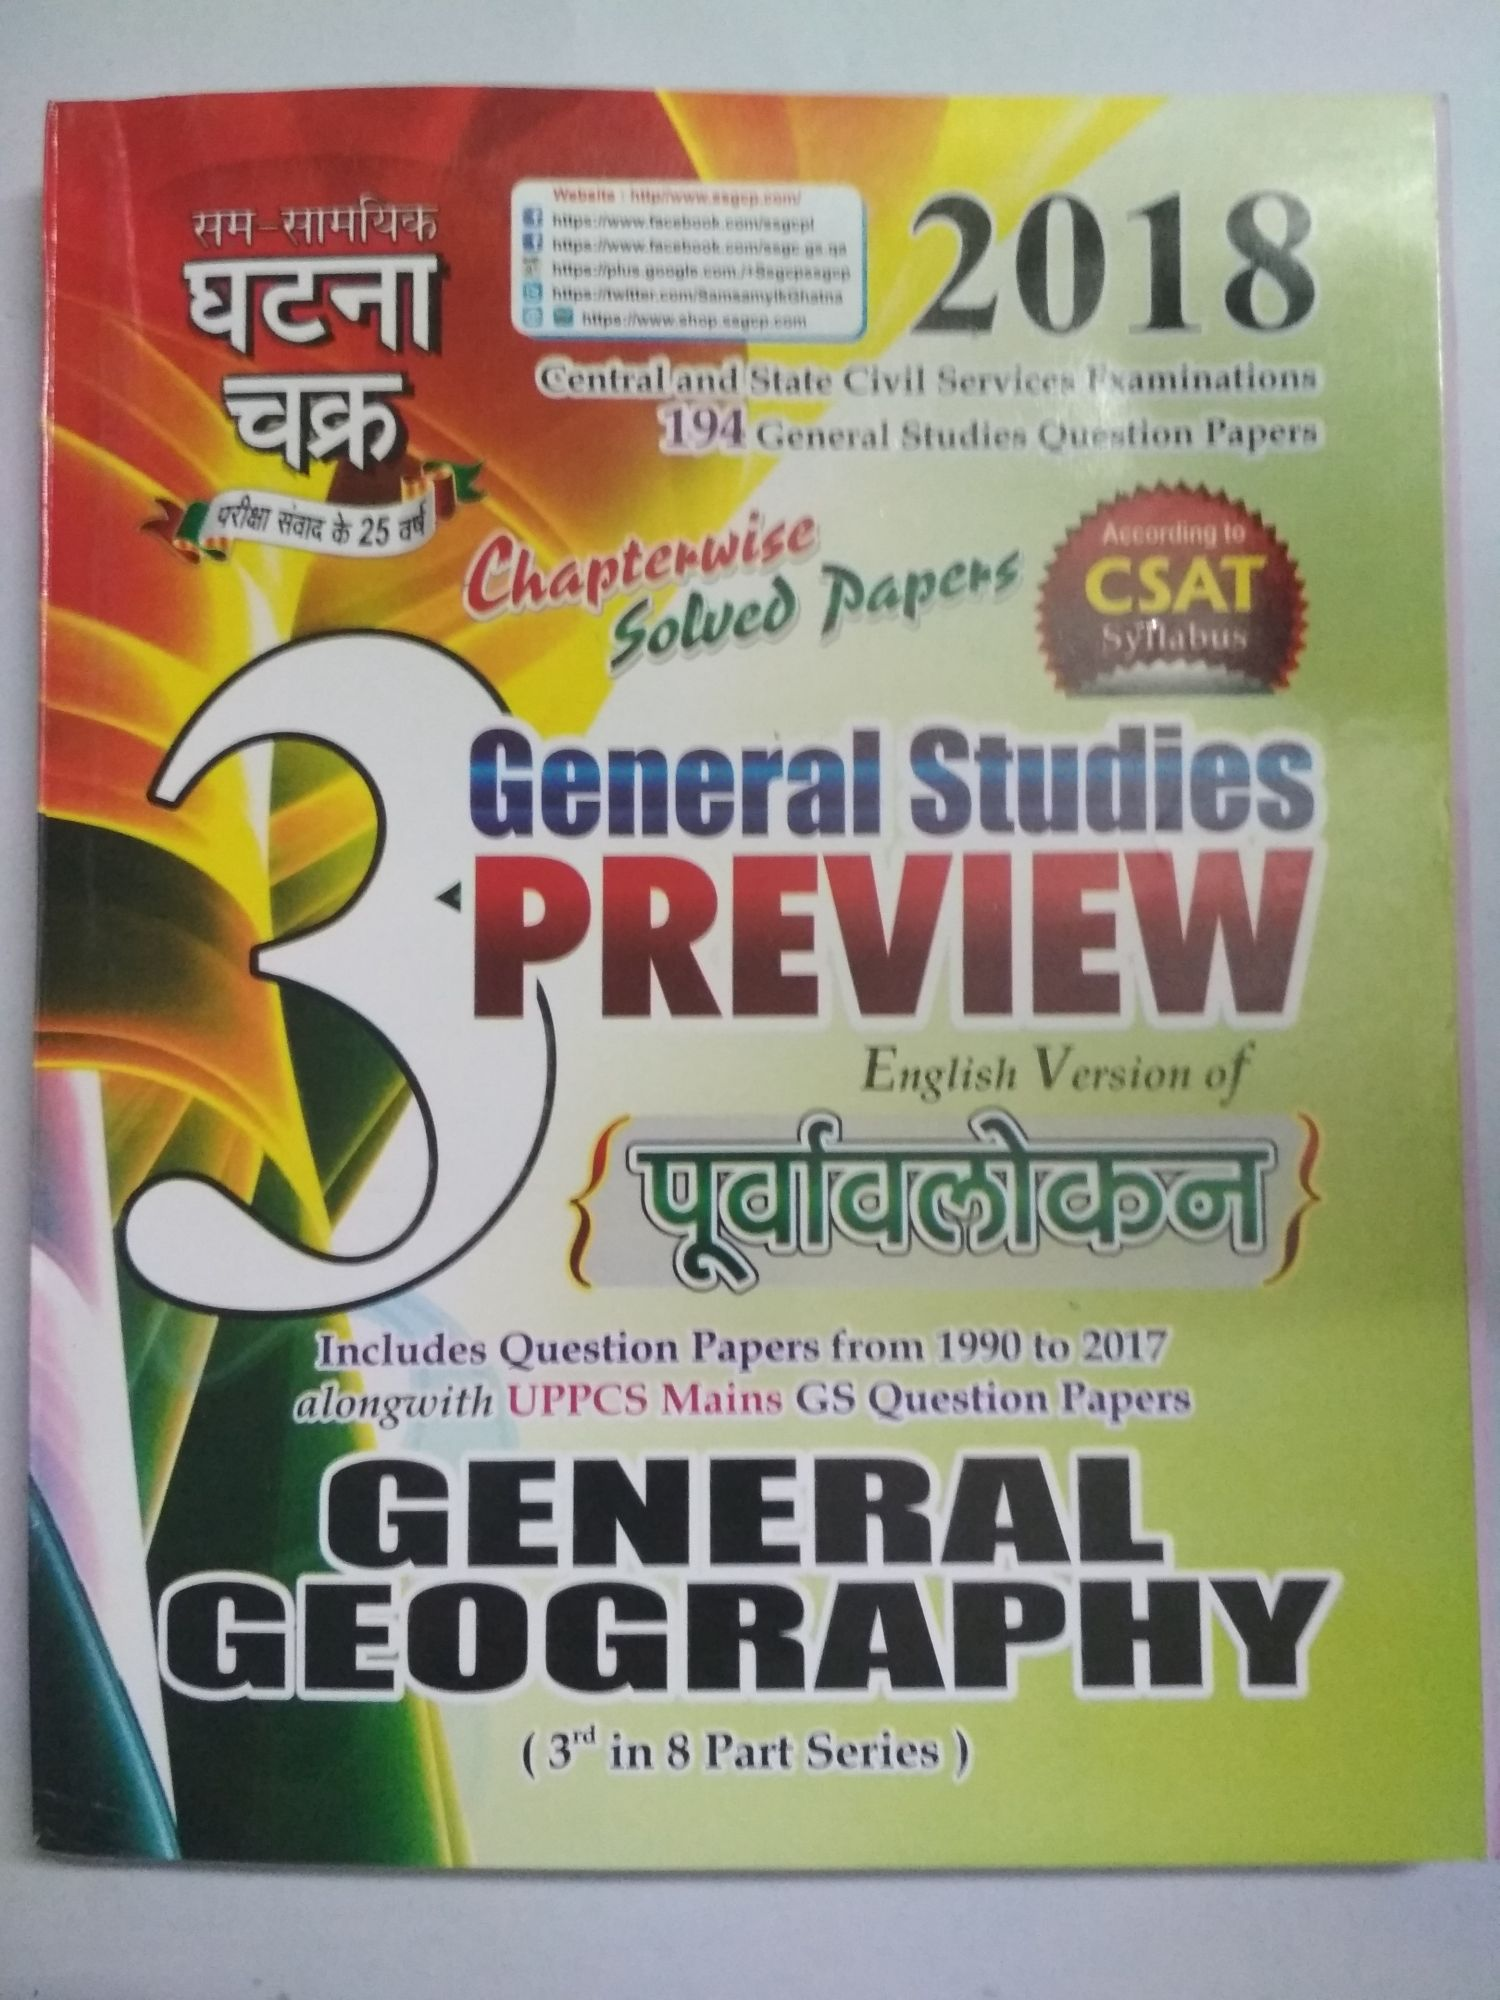 Gatnachakra General Studies General Geography Preview Question Papers From 1990 to 2017